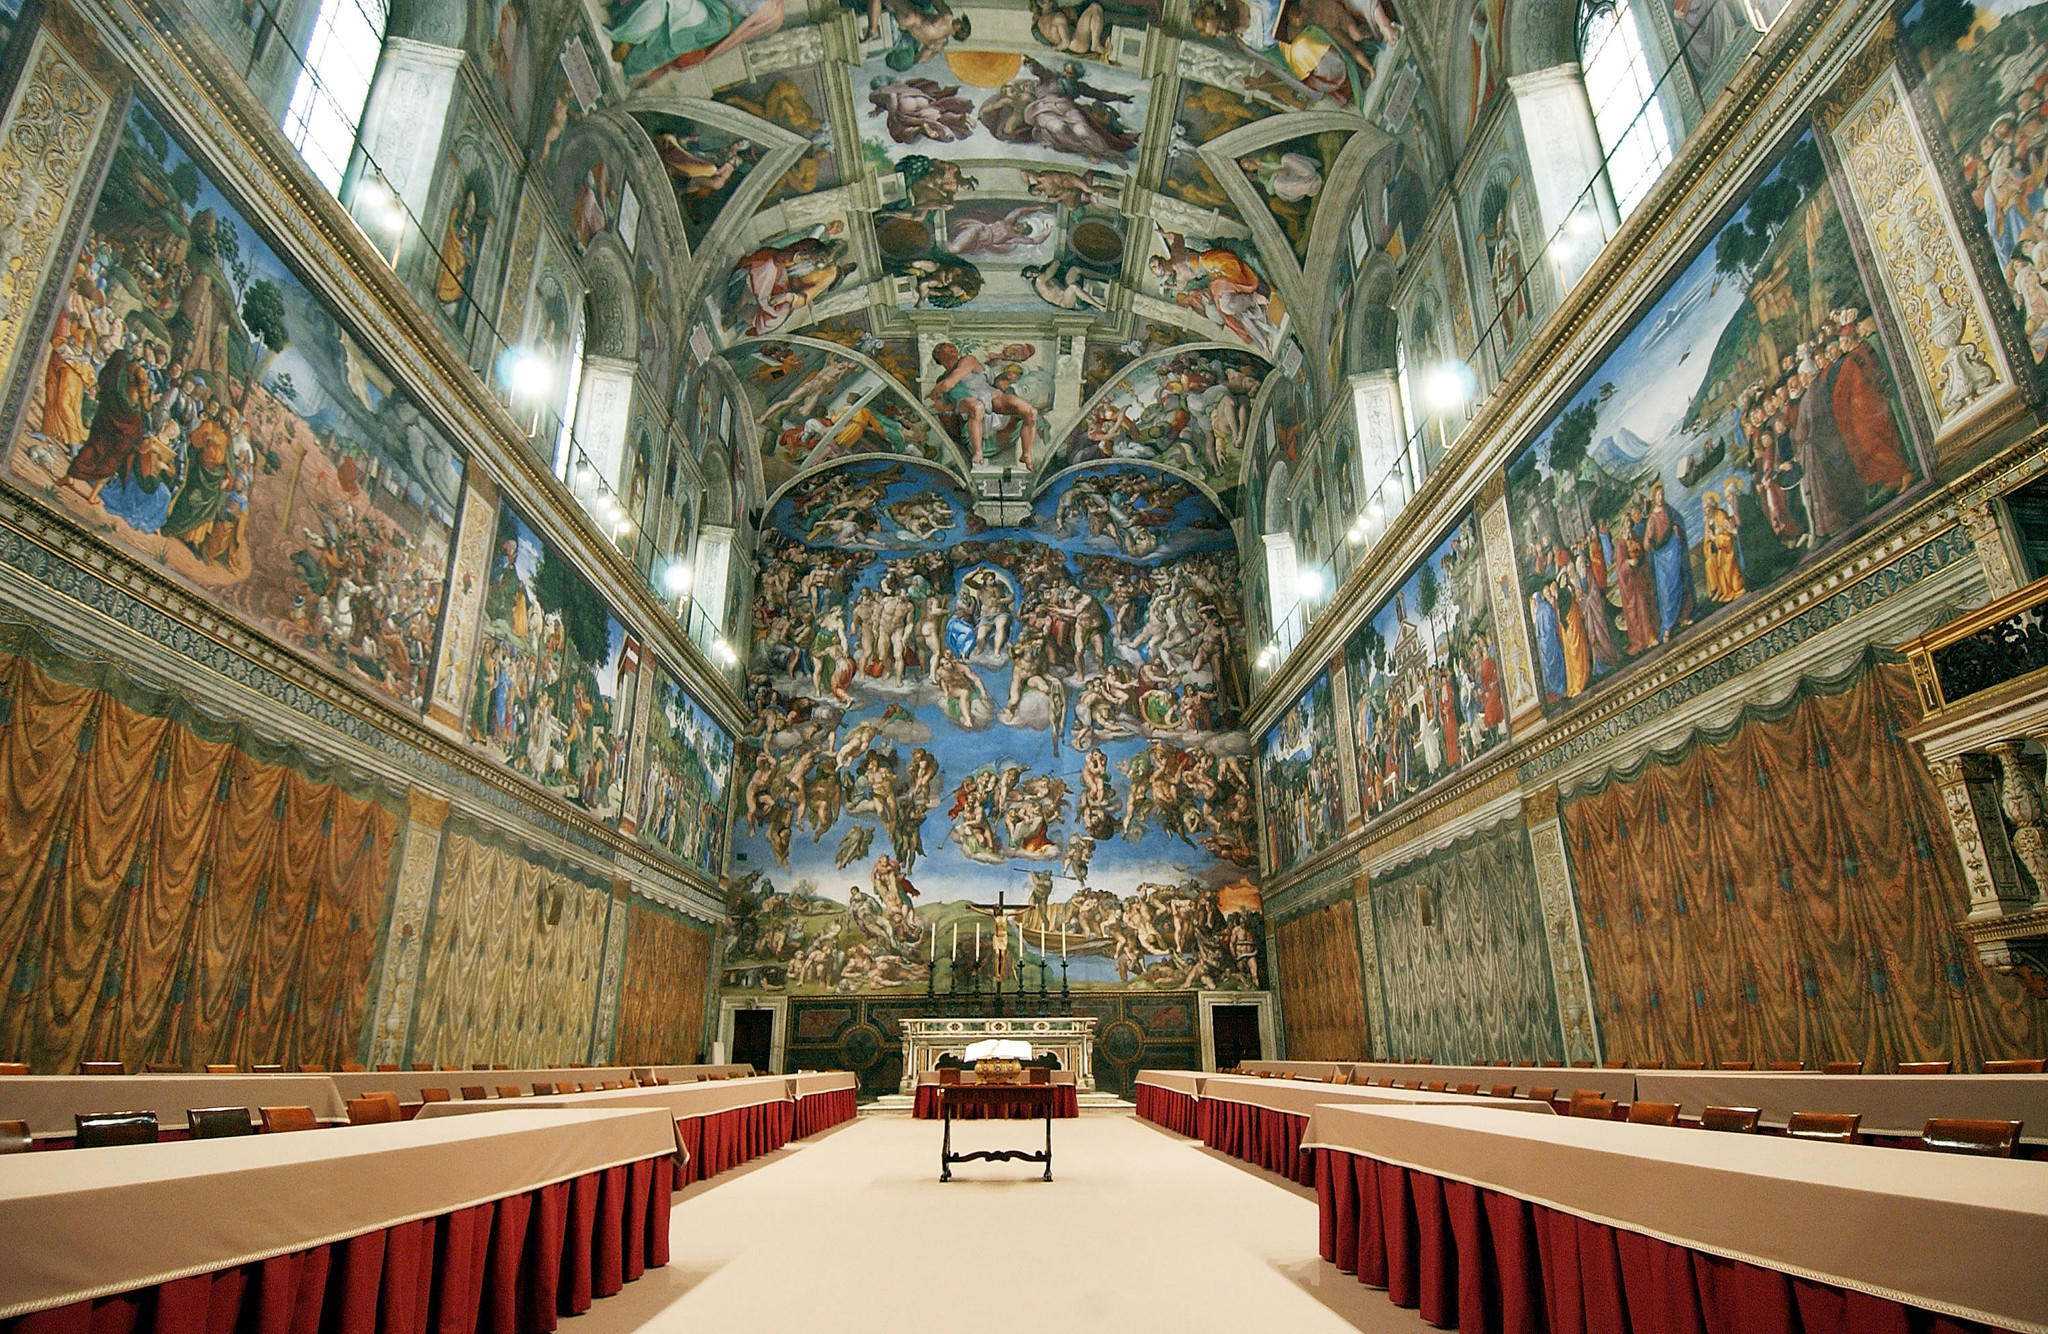 The Sistine Chapel, shown here prepared for a conclave, is getting a new air conditioning unit from Carrier, a division of United technologies Corp.